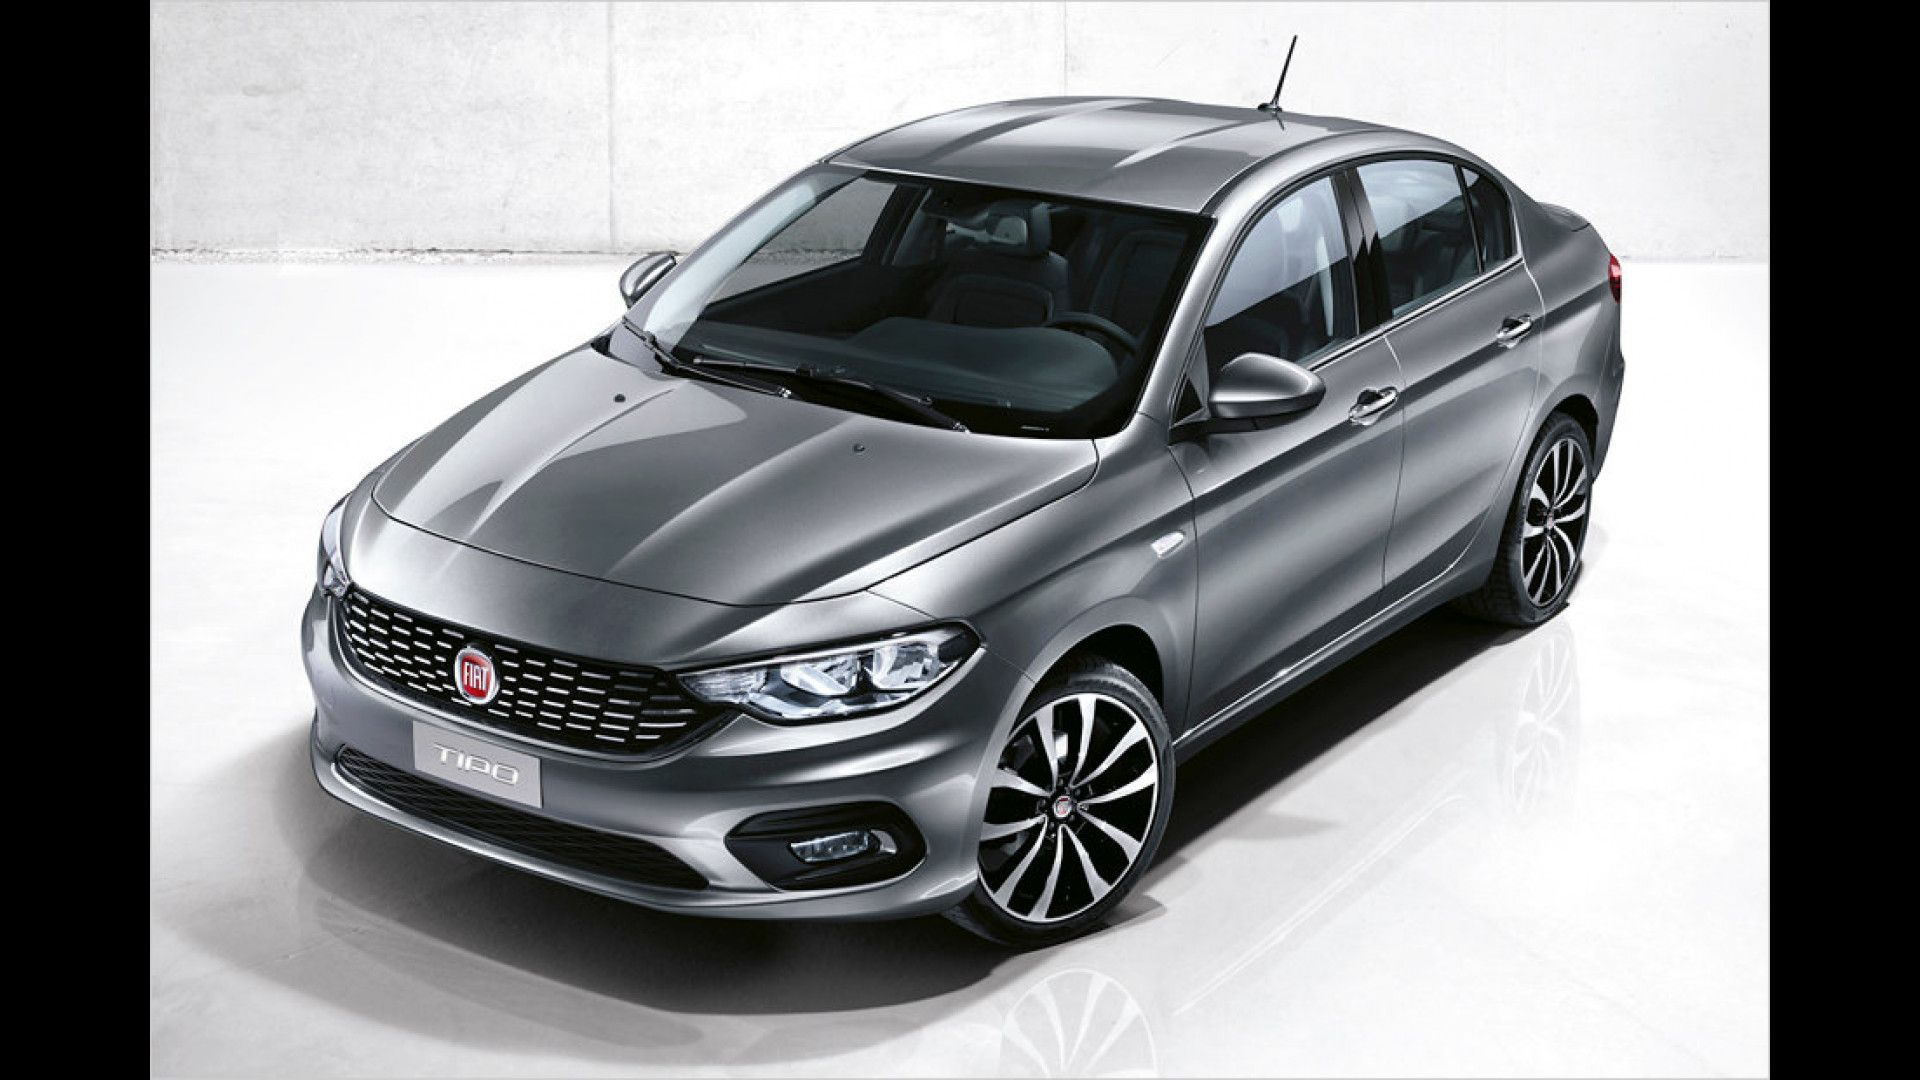 57 All New 2020 Fiat Aegea History